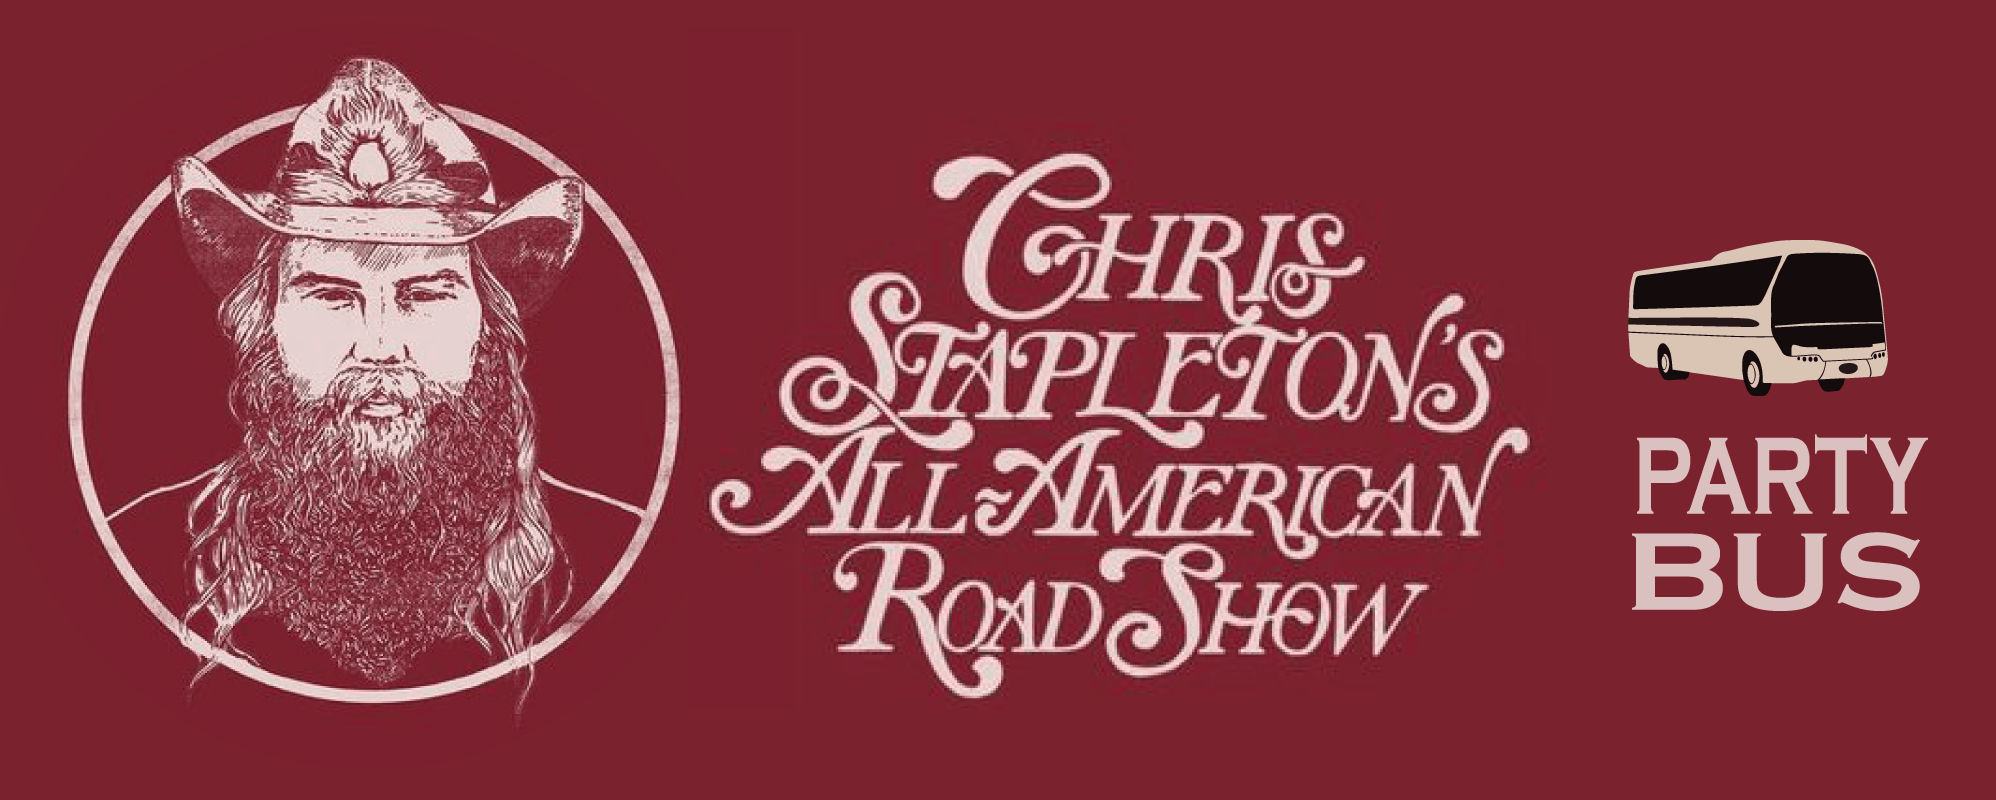 Chris Stapleton Party Bus